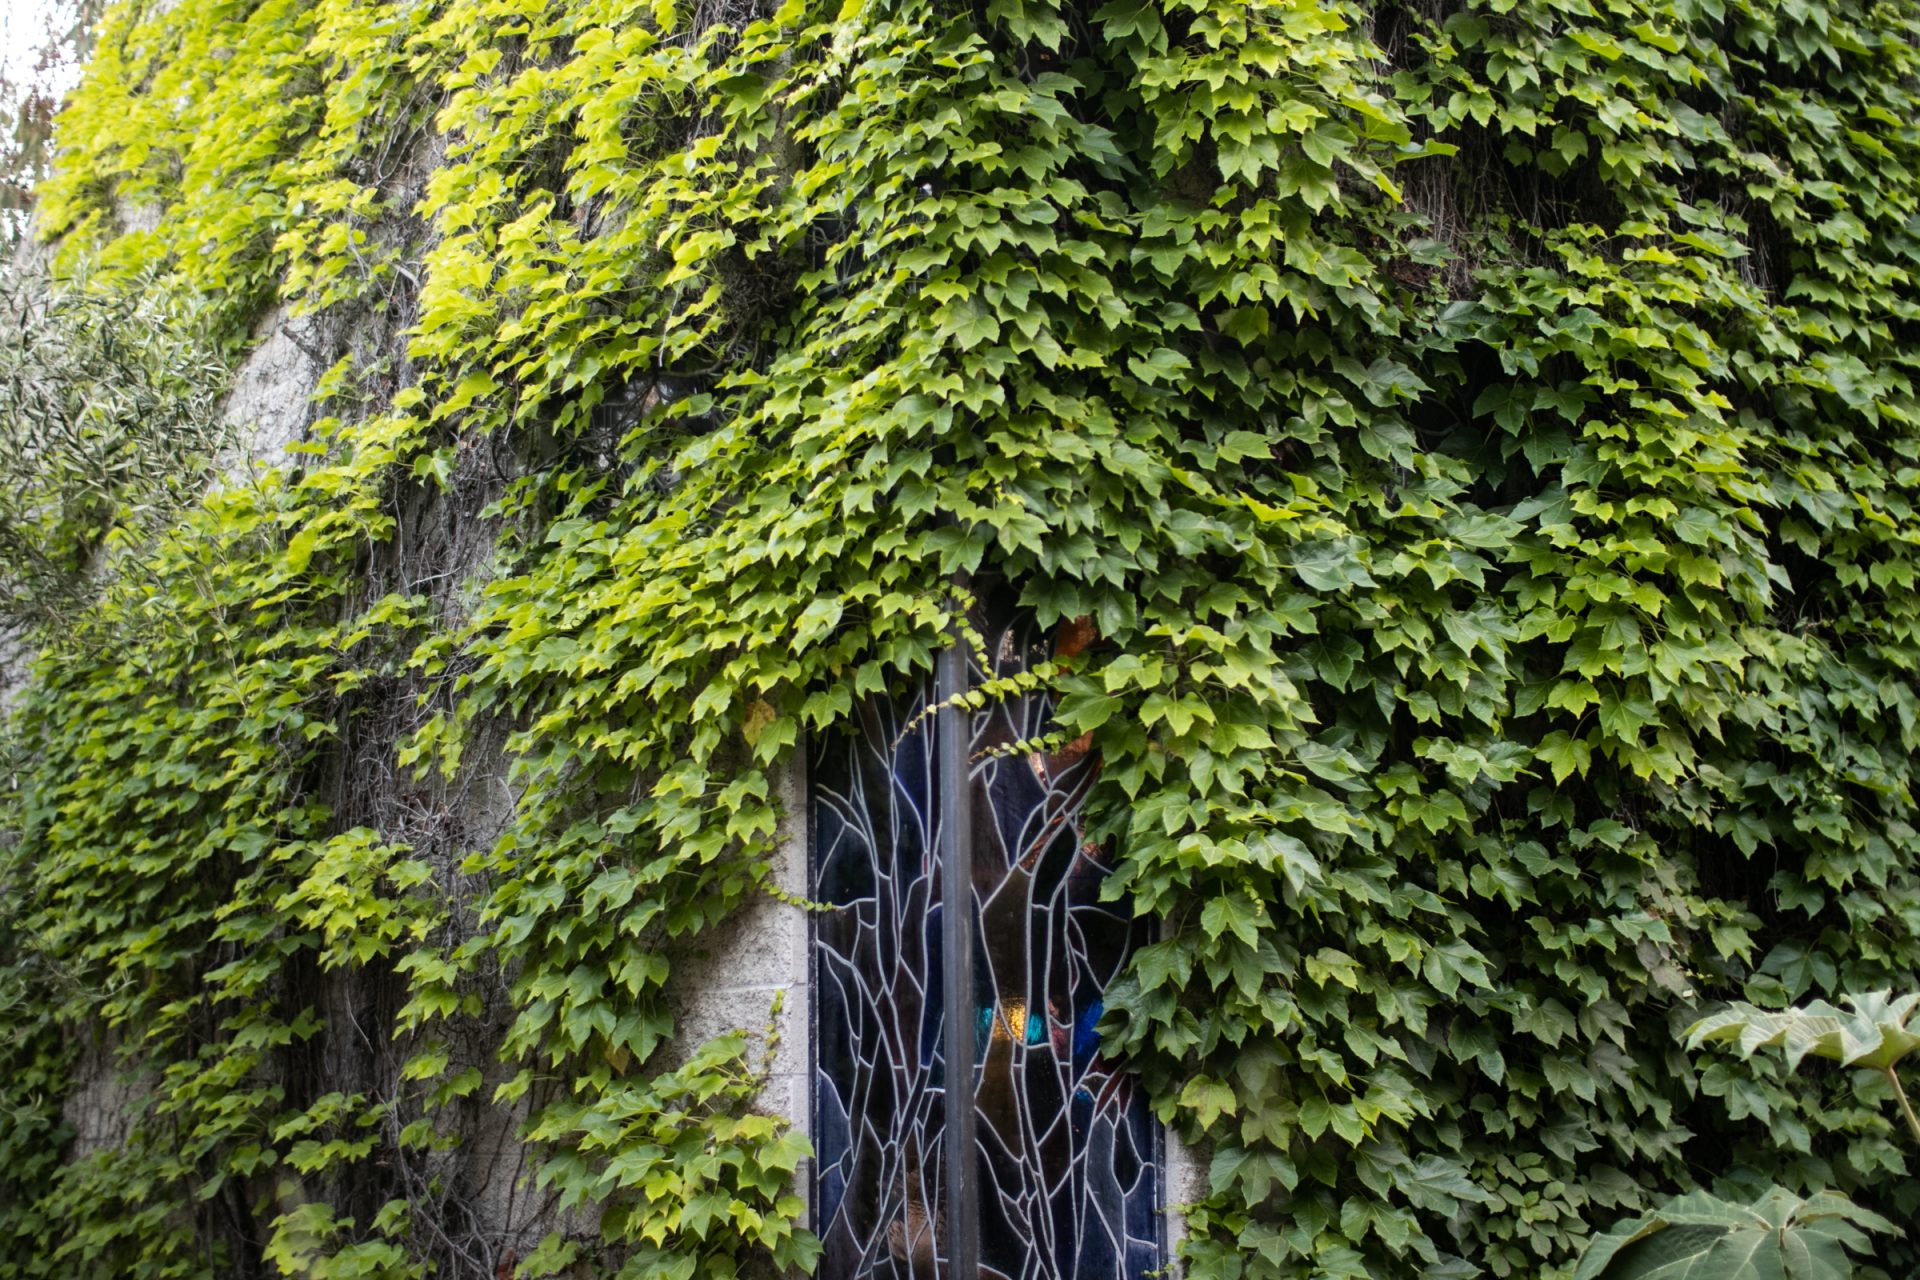 Vines Growing On Building With Stained Glass Window